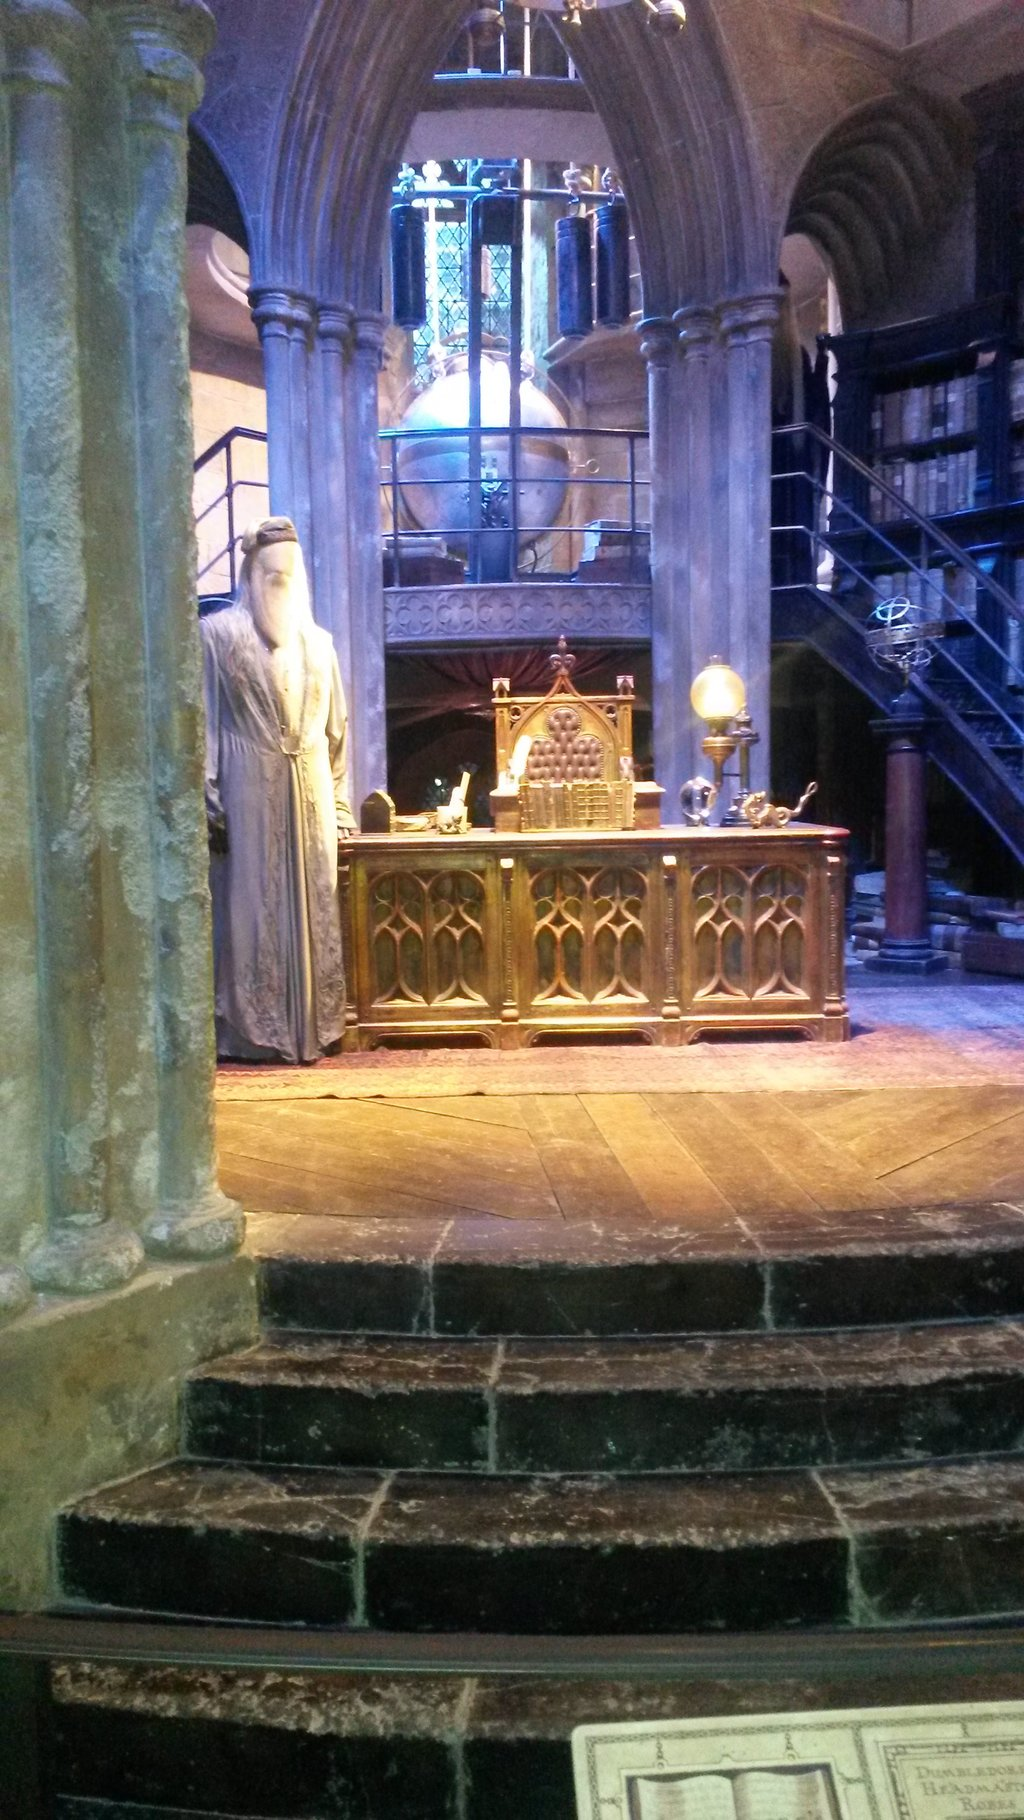 Harry Potter Studio Tour<figcaption>Dumbledore's Office</figcaption>